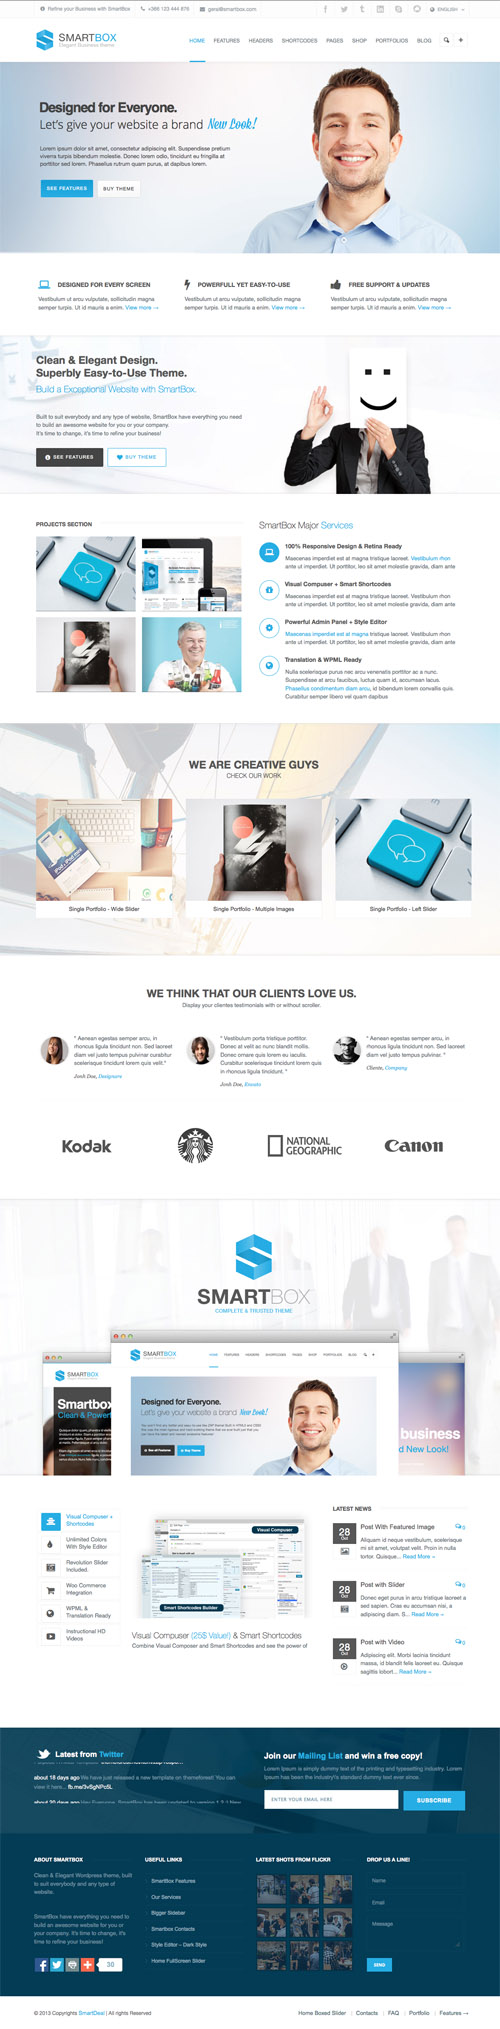 SmartBox PSD Template